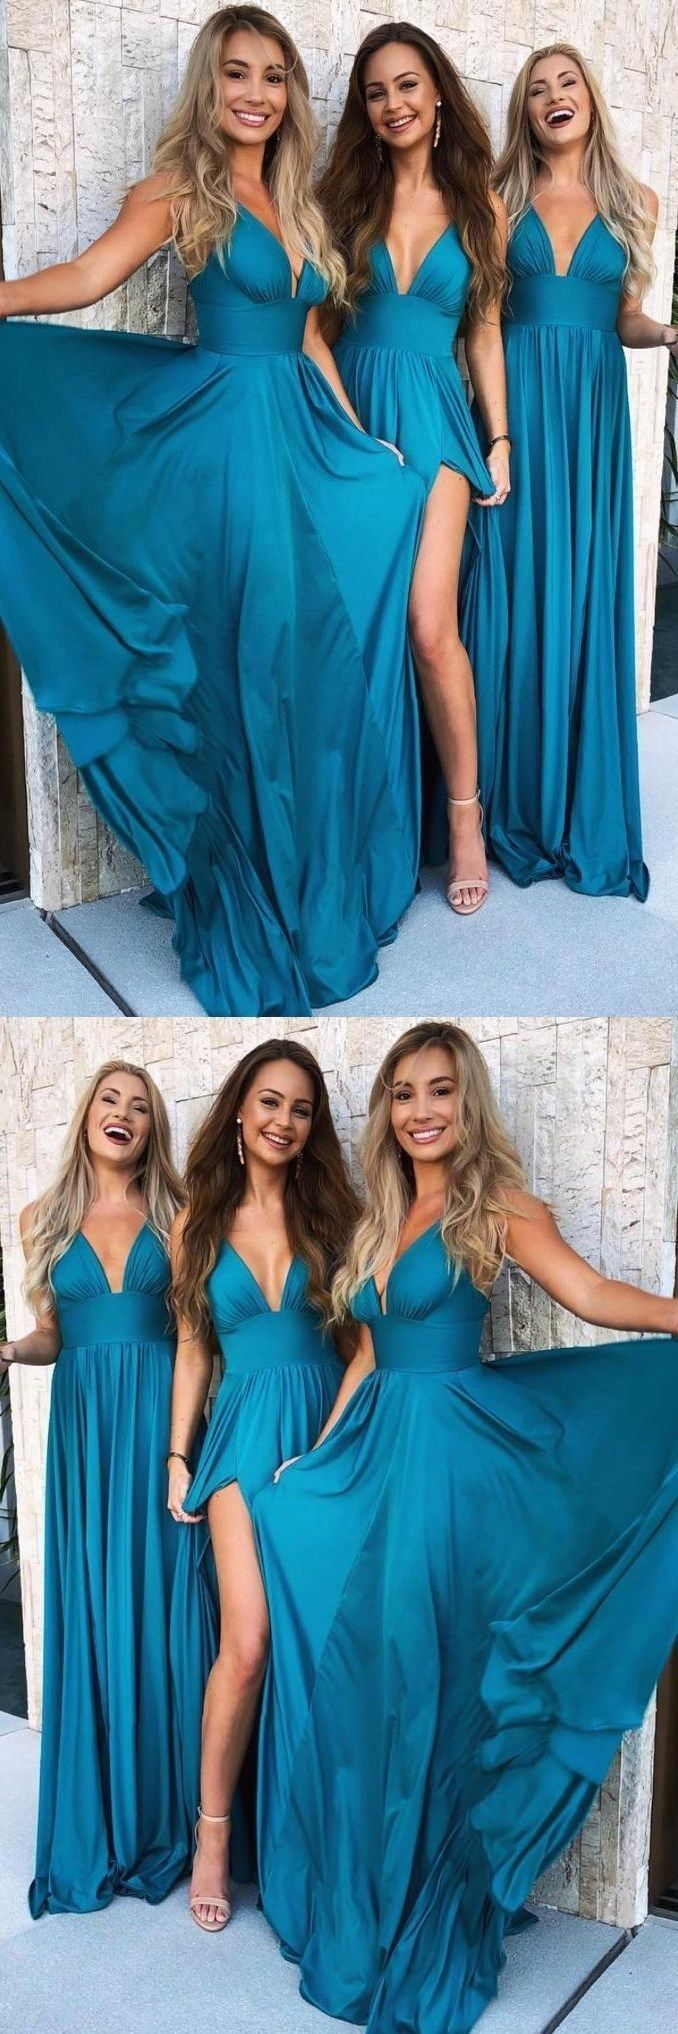 Sexy aline prom dresses chiffon deep vneck floorlength turquoise